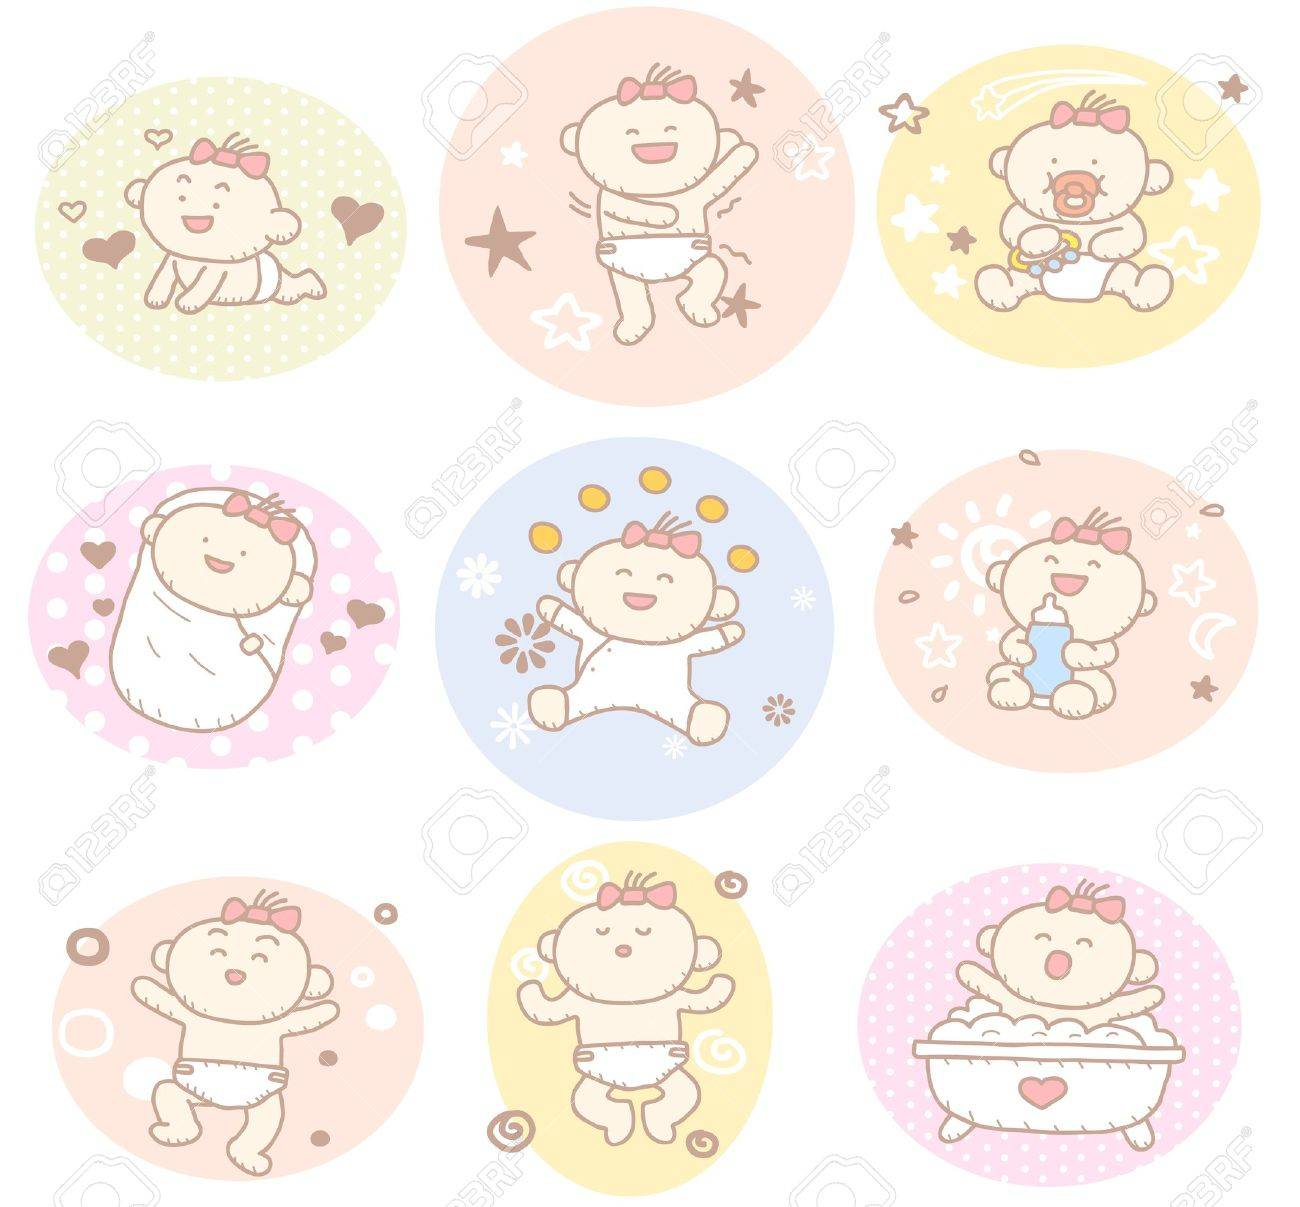 Hand drawn baby girl collection Stock Vector - 11810270